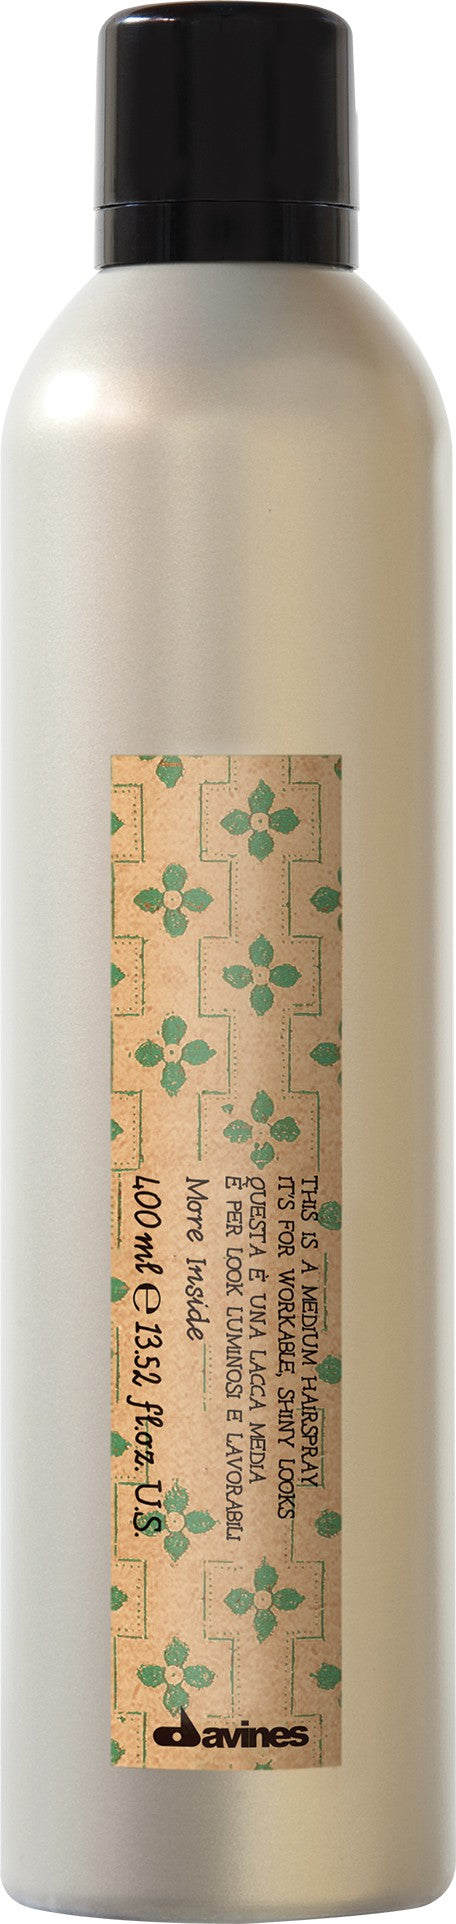 Davines Salon Quality Medium Hold Hair Spray Fabric